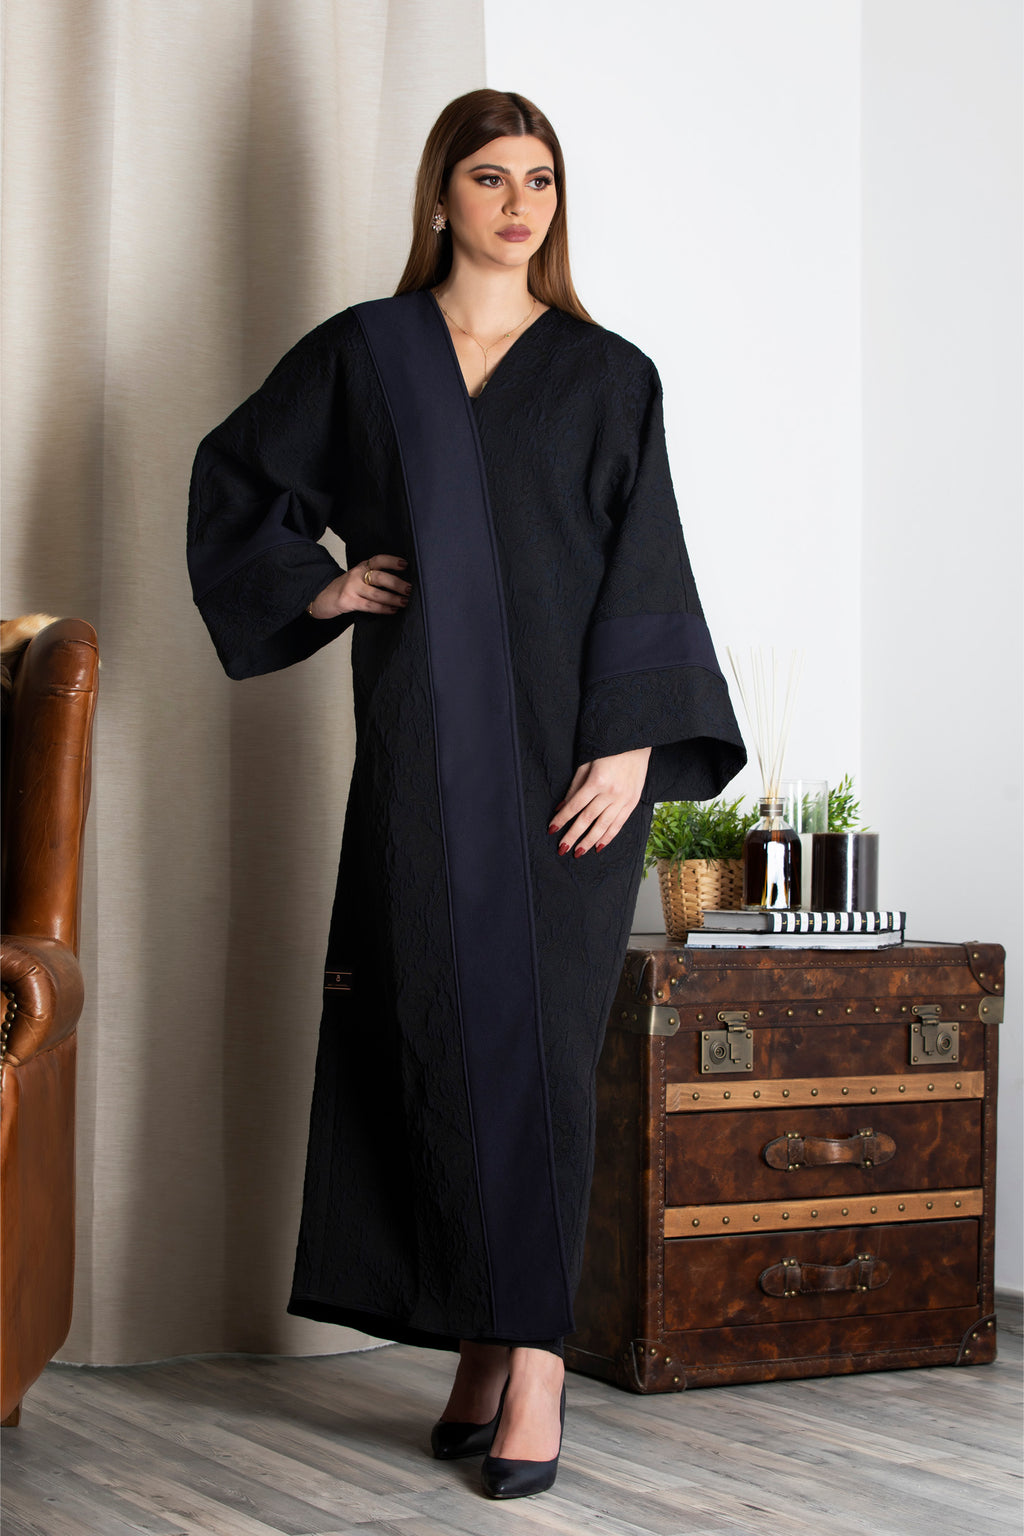 NAVY BLUE FRENCH JACQUARD BISHT OPEN ABAYA.